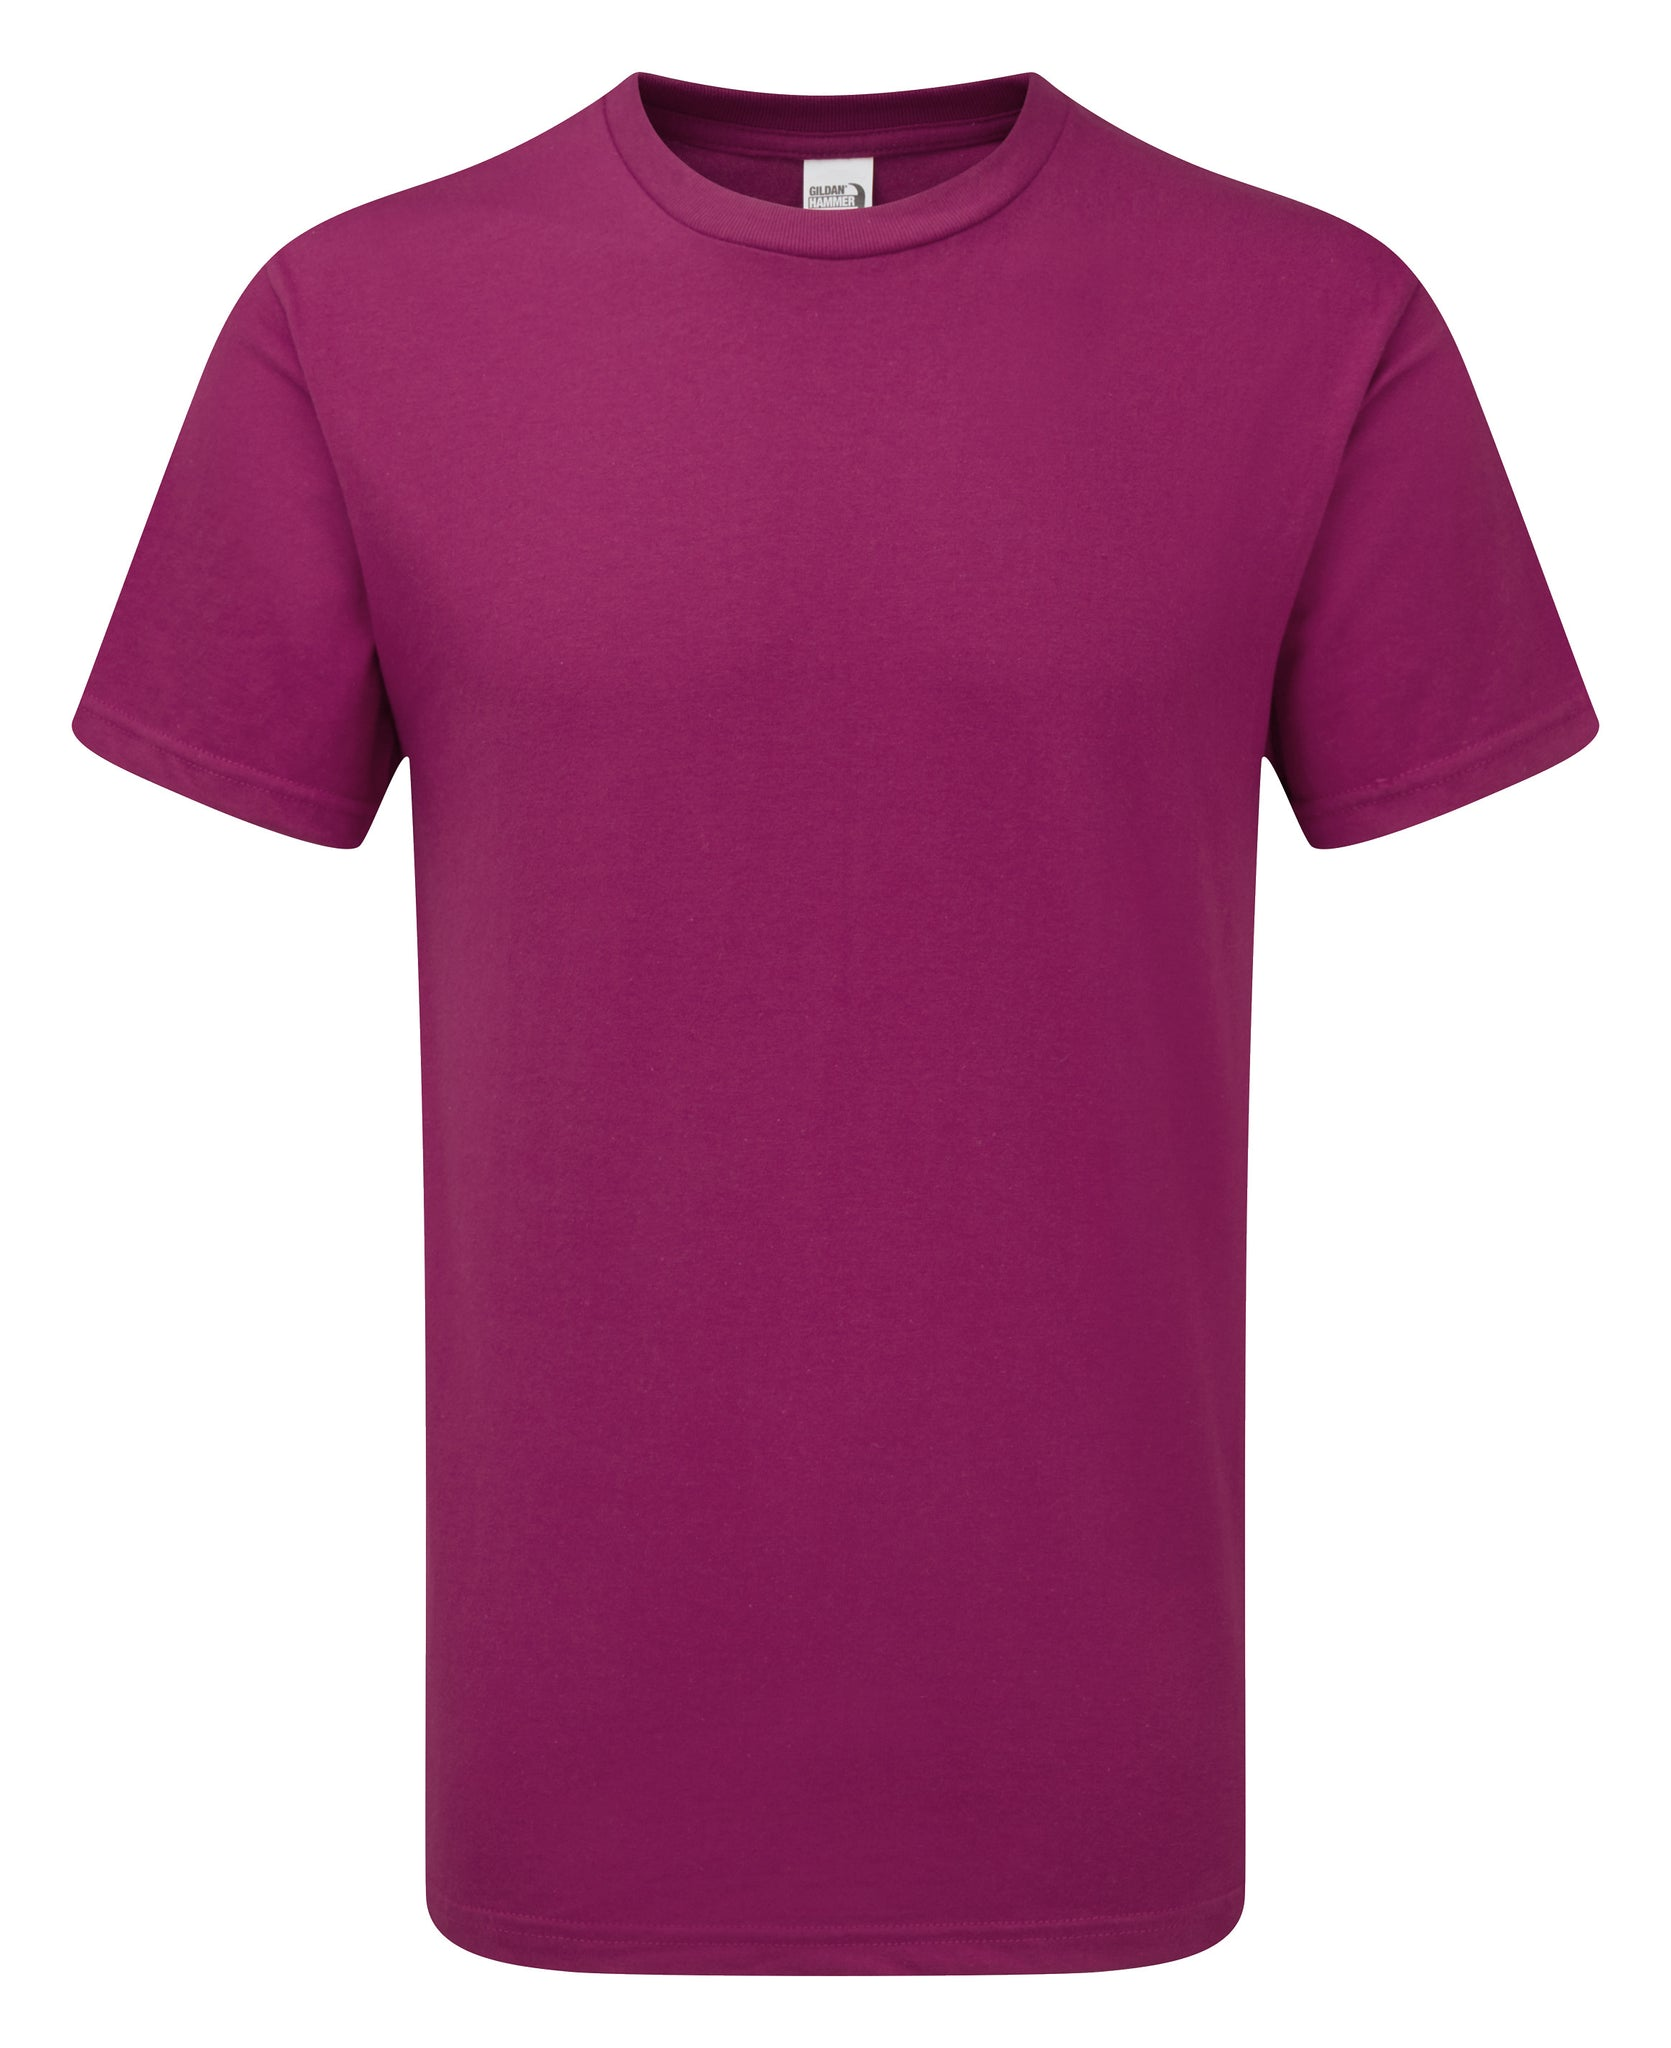 XL Berry Cotton T Shirt - choose logo